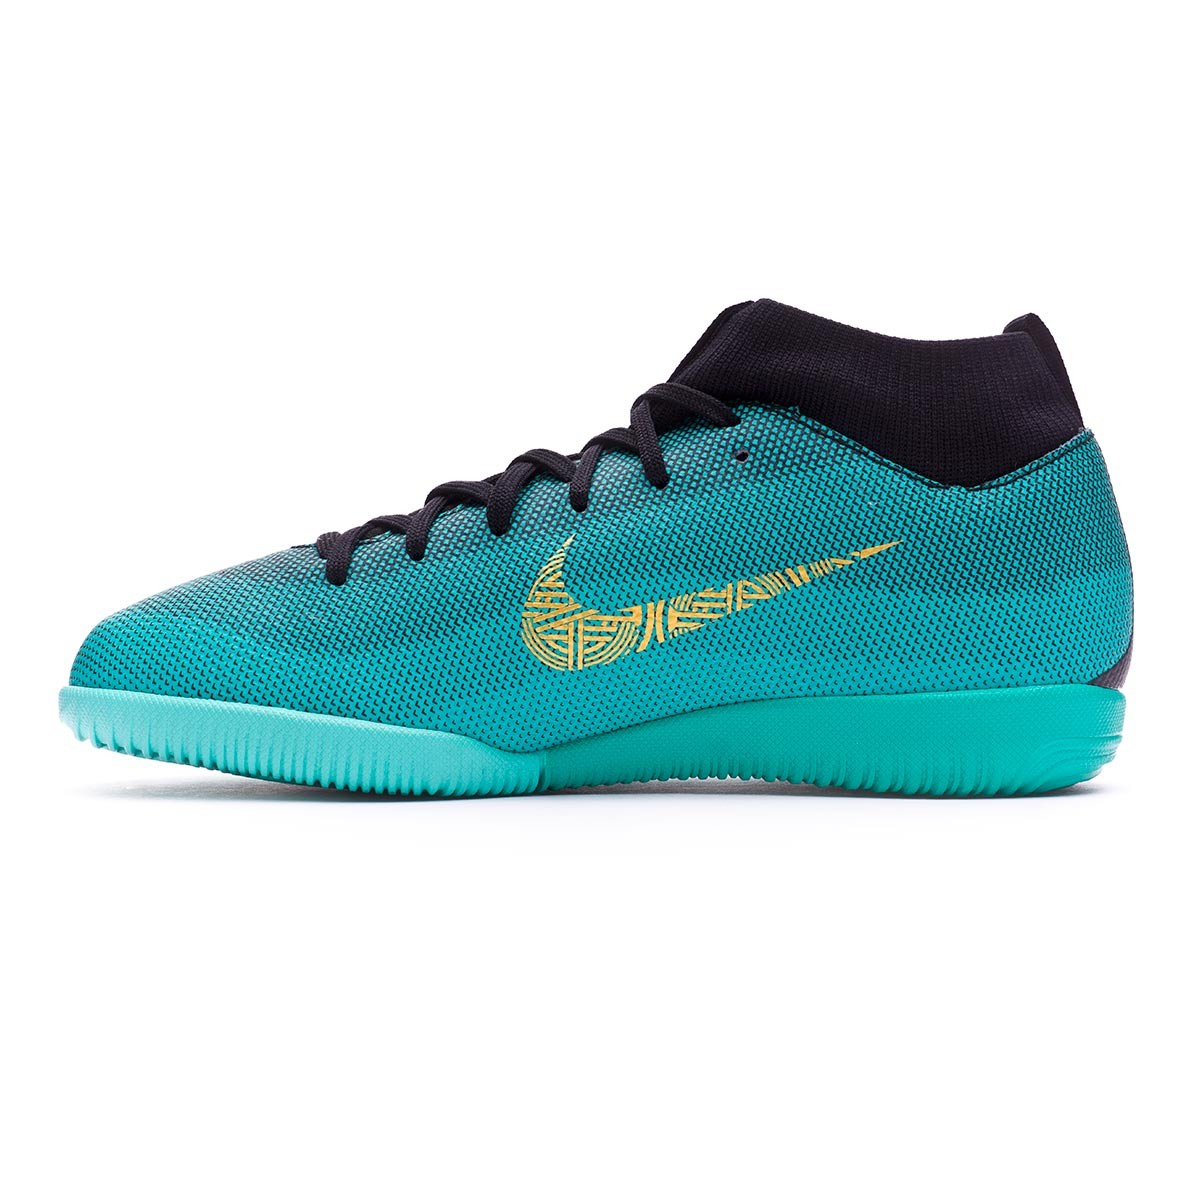 73bbce40486 Futsal Boot Nike Kids Mercurial Superfly VI Academy GS CR7 IC Clear  jade-Metallic vivid gold-Black - Football store Fútbol Emotion